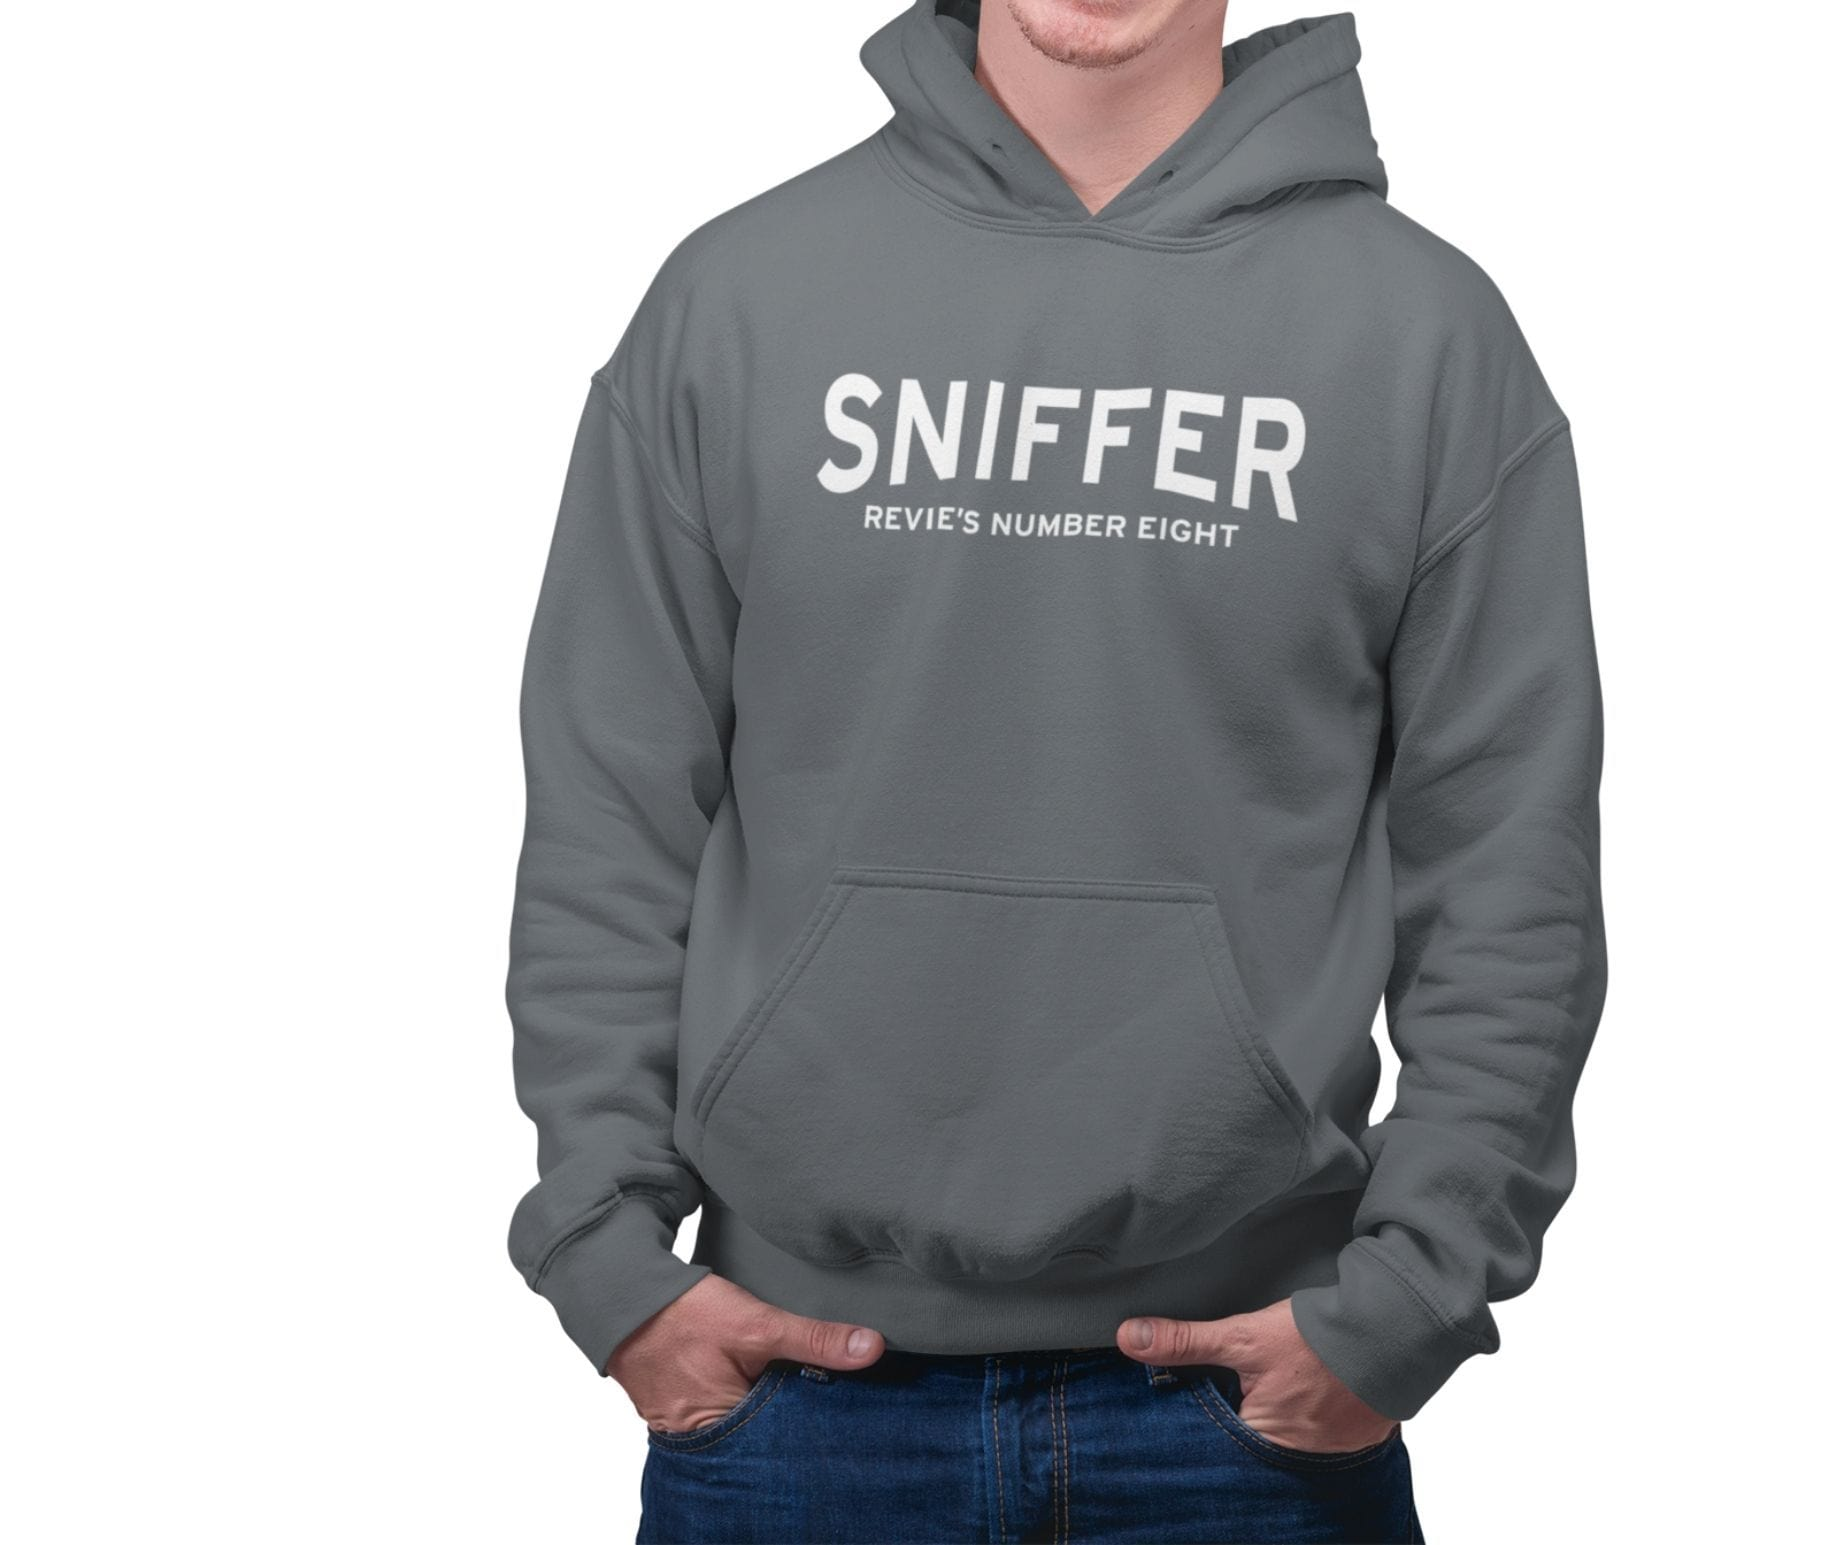 Sniffer Hoodie